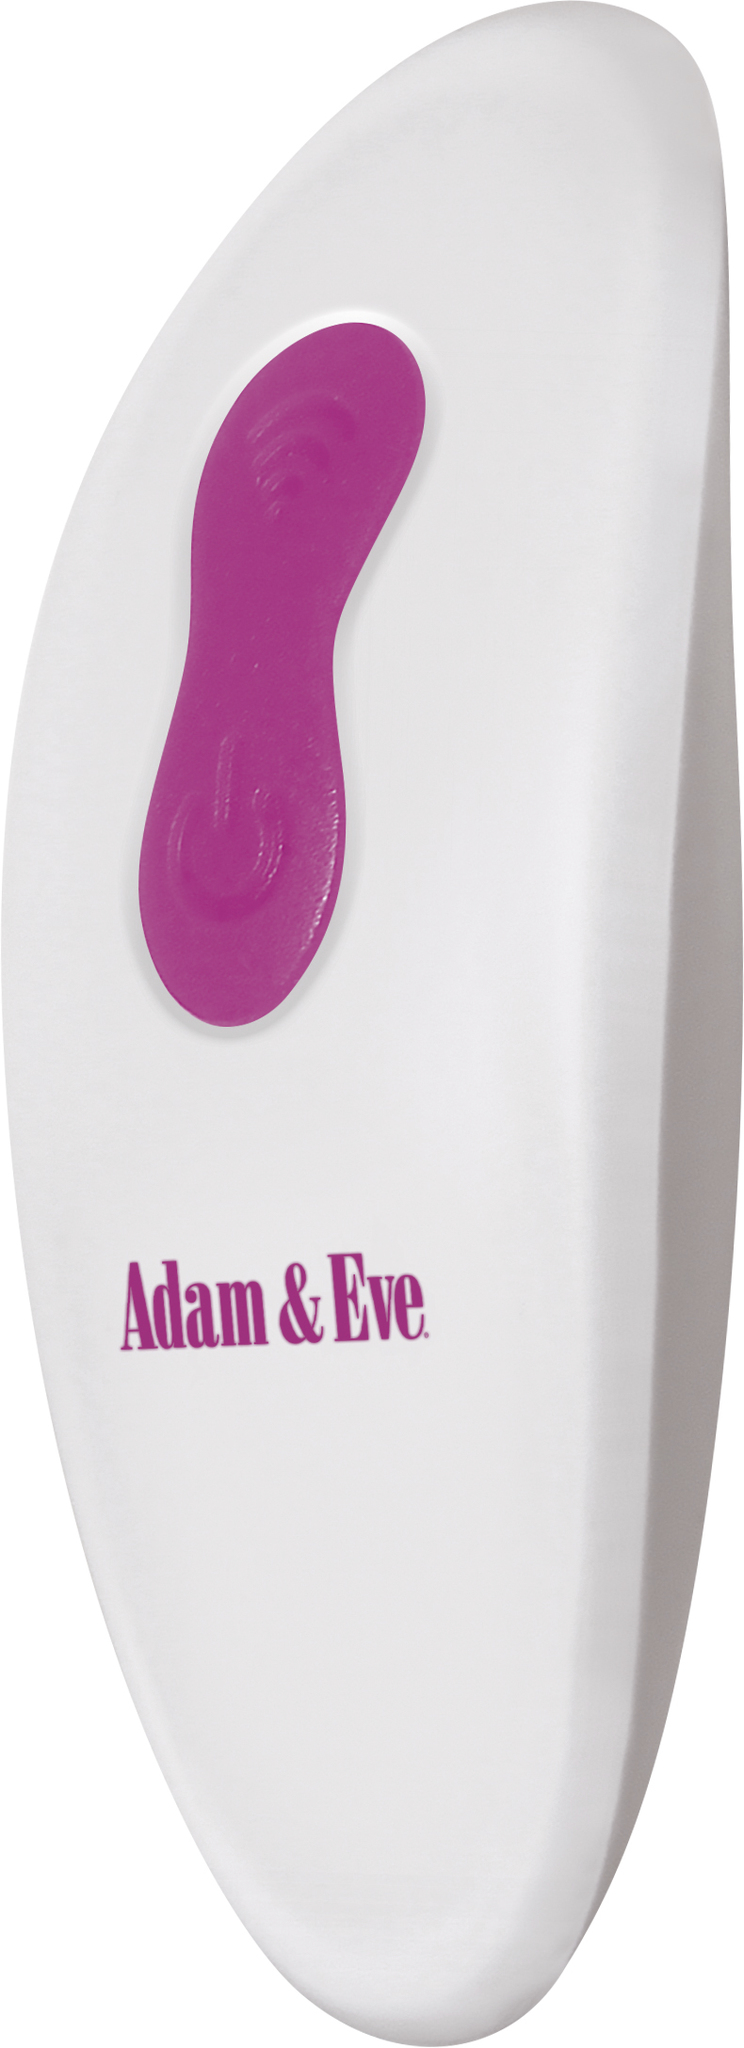 ADAM & EVE EVES RECHARGEABLE REMOTE CONTROL BULLET